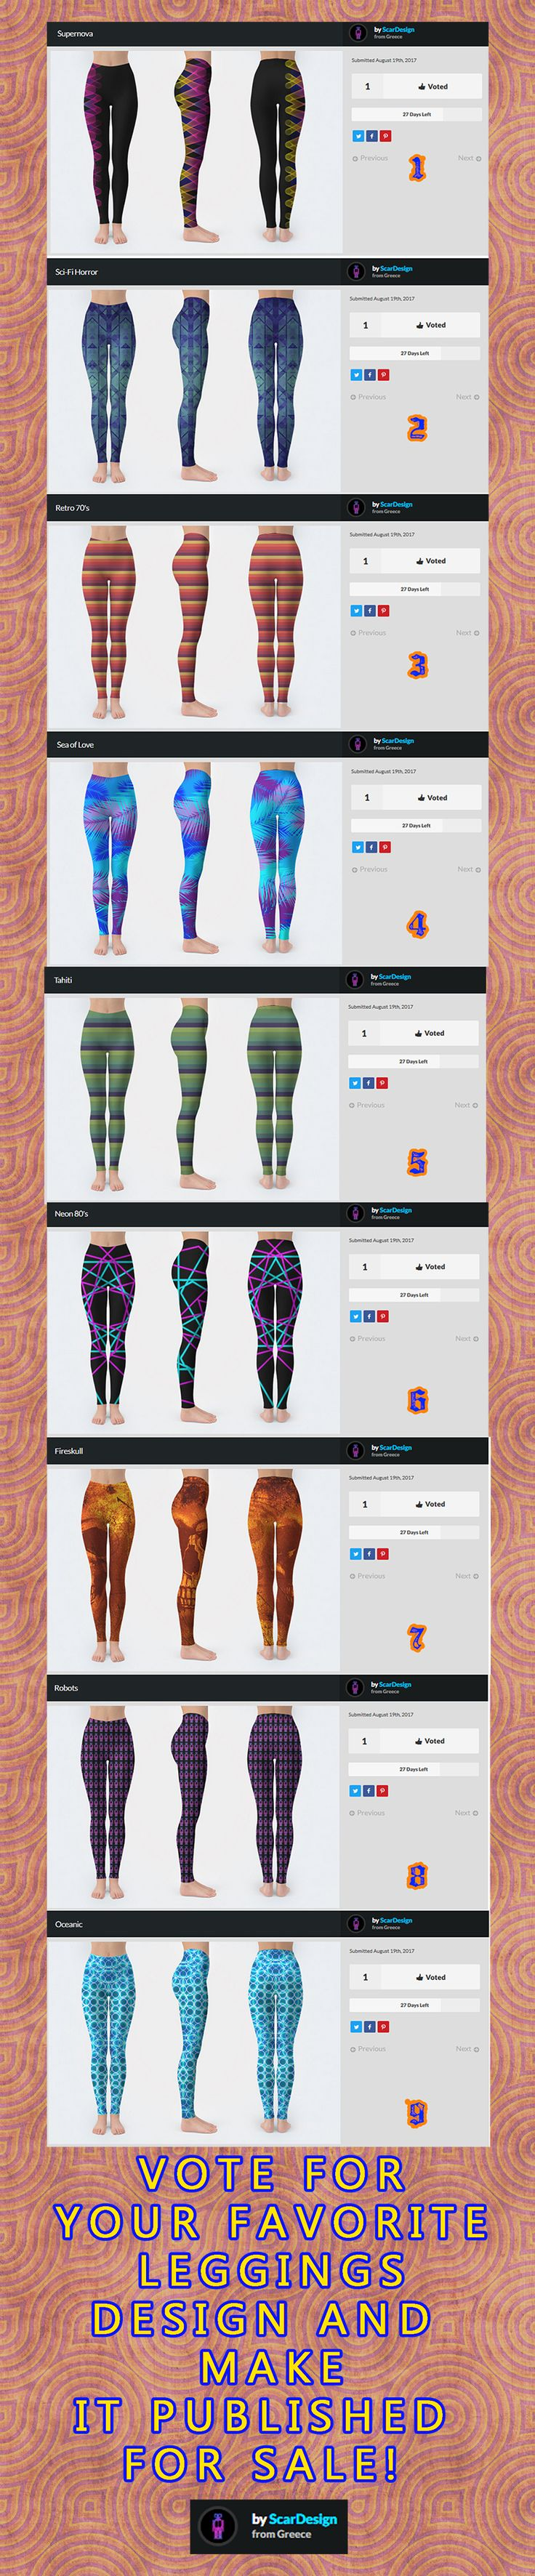 VOTE FOR YOUR FAVORITE LEGGINGS DESIGN AND GET IT PULISHED FOR SALE!!  #vote #contest #leggings #scardesign #designbyhumans #leggingsdesign #yogaleggings #giftsforher #gym